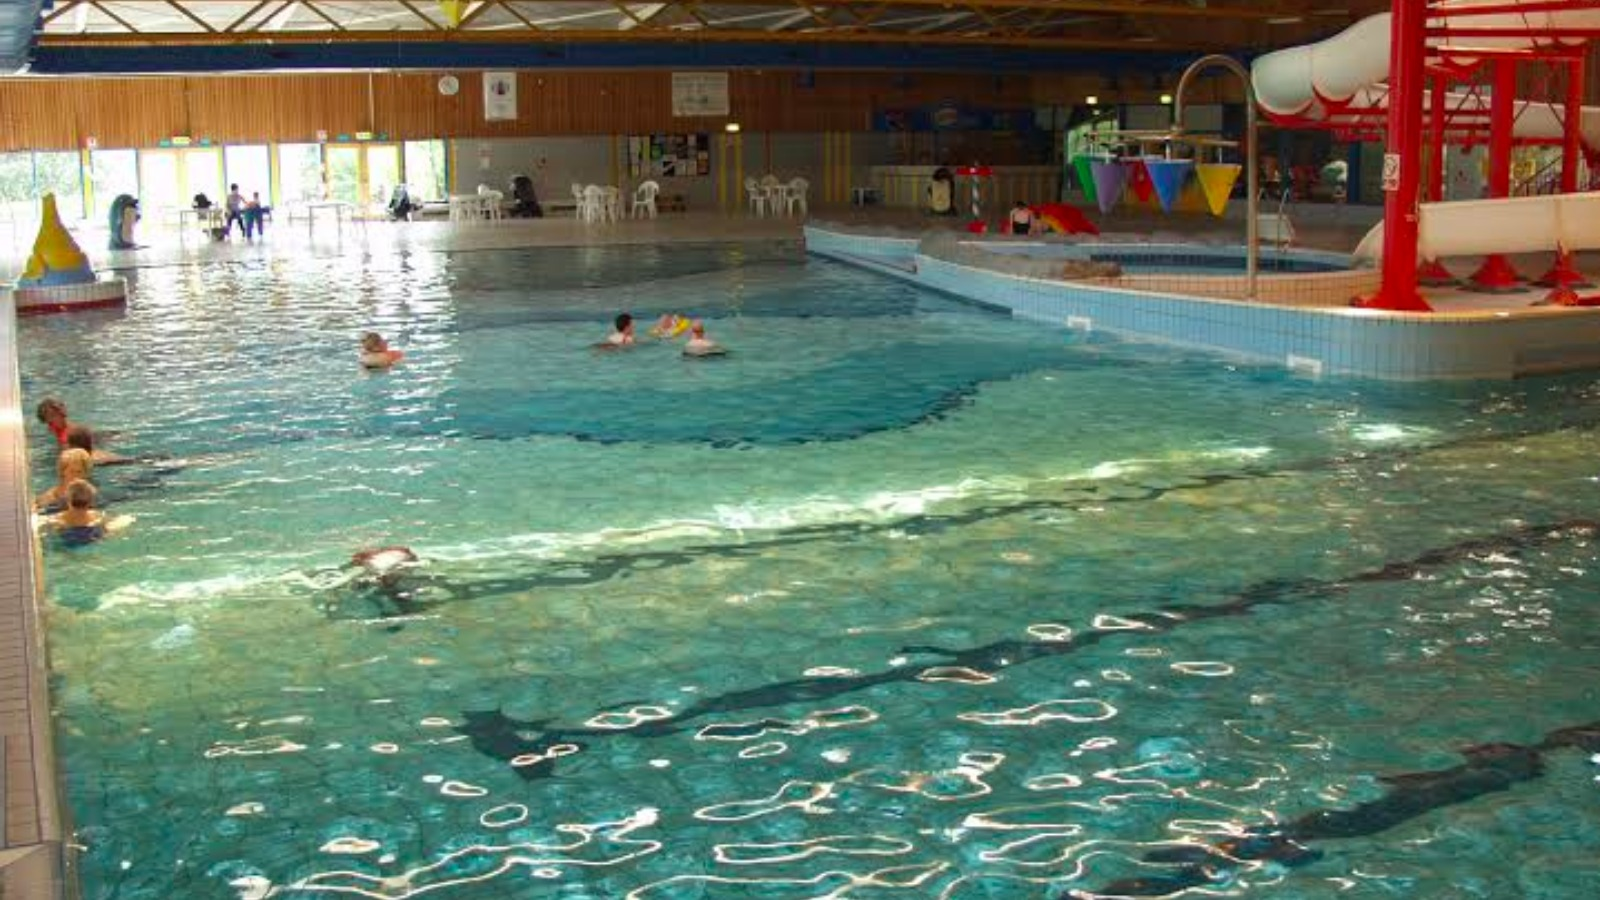 39 Disgusting 39 Swimming Pool Closes After Contamination Central Itv News